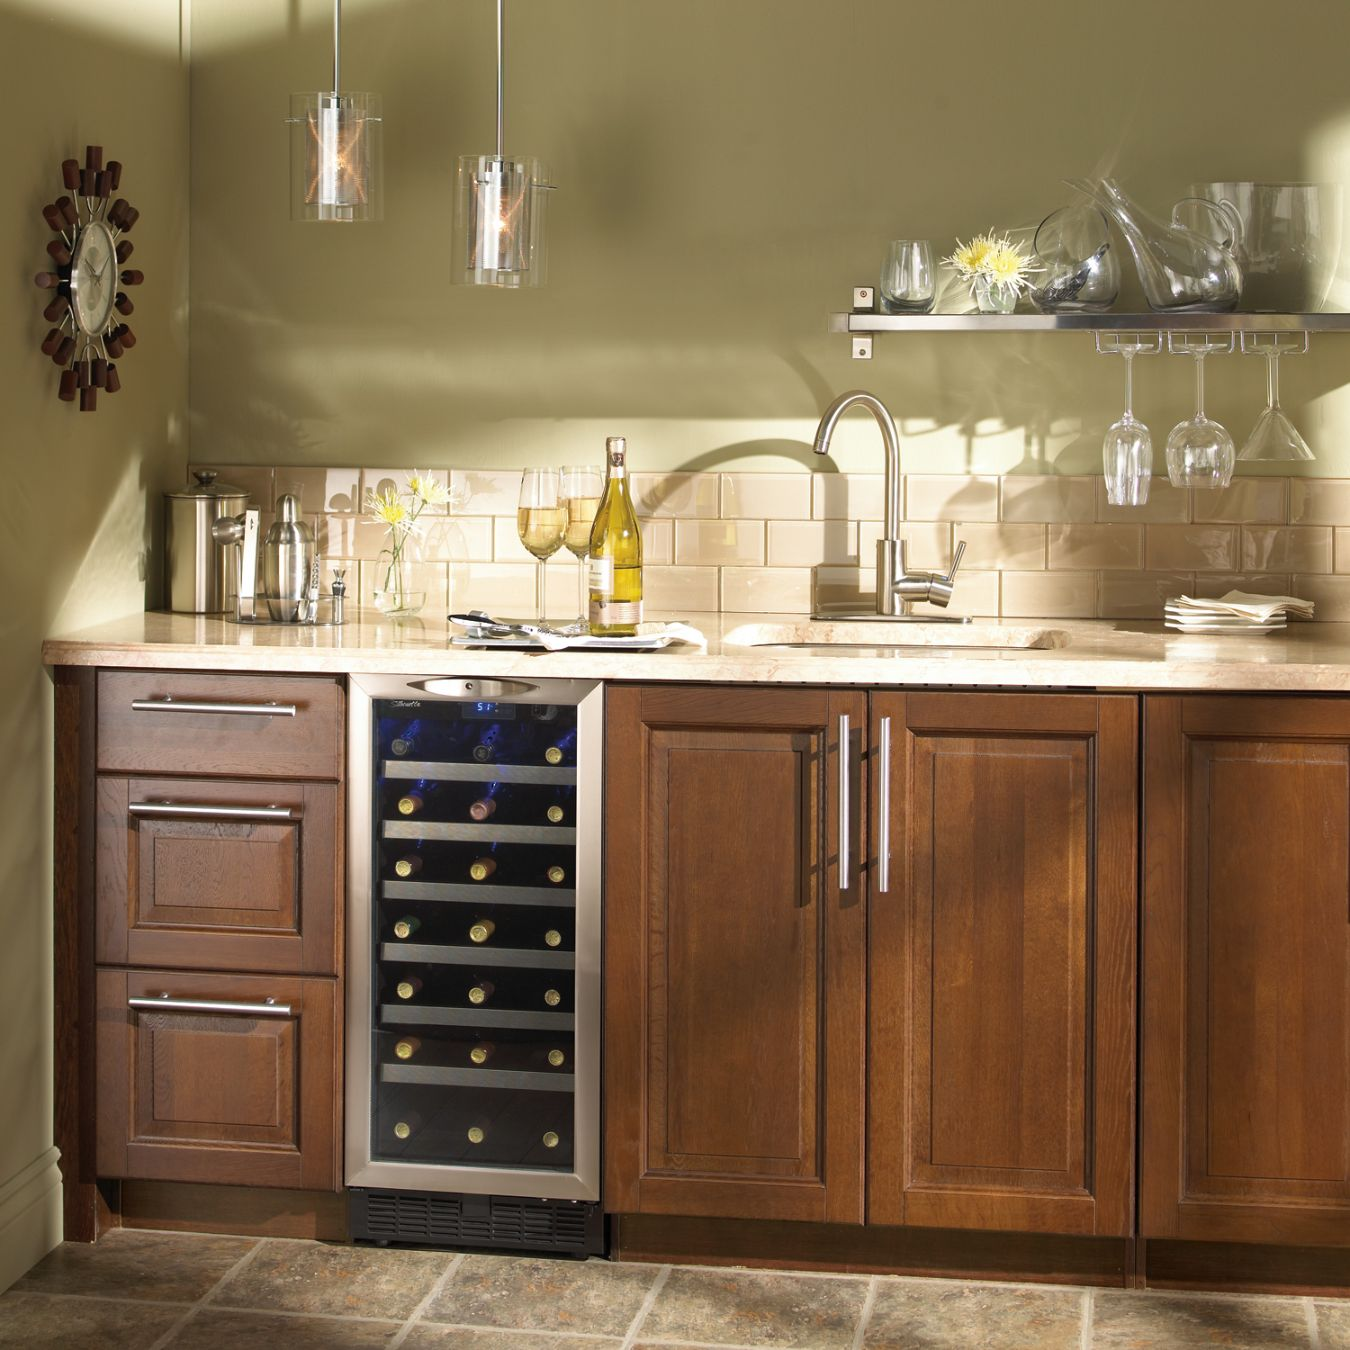 tips theme or not to theme that is kitchen wine cabinet vision theme or not to theme that is the question Fieldstone Hill Design